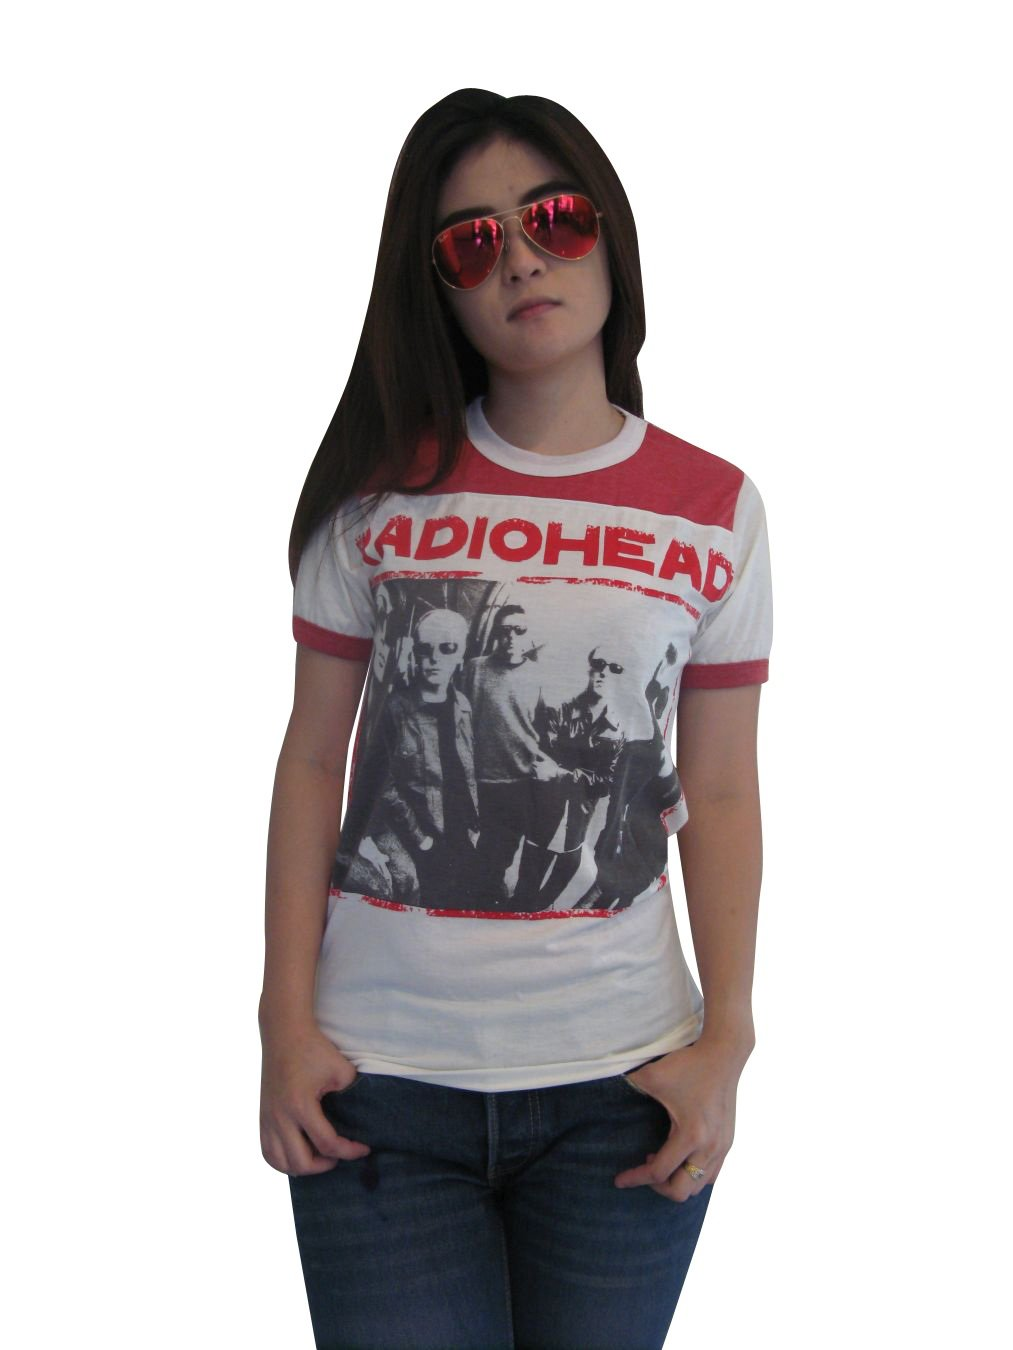 Bunny Brand Women's Thom Yorke Radiohead Ringer T-Shirt Jersey White Red New (Small)